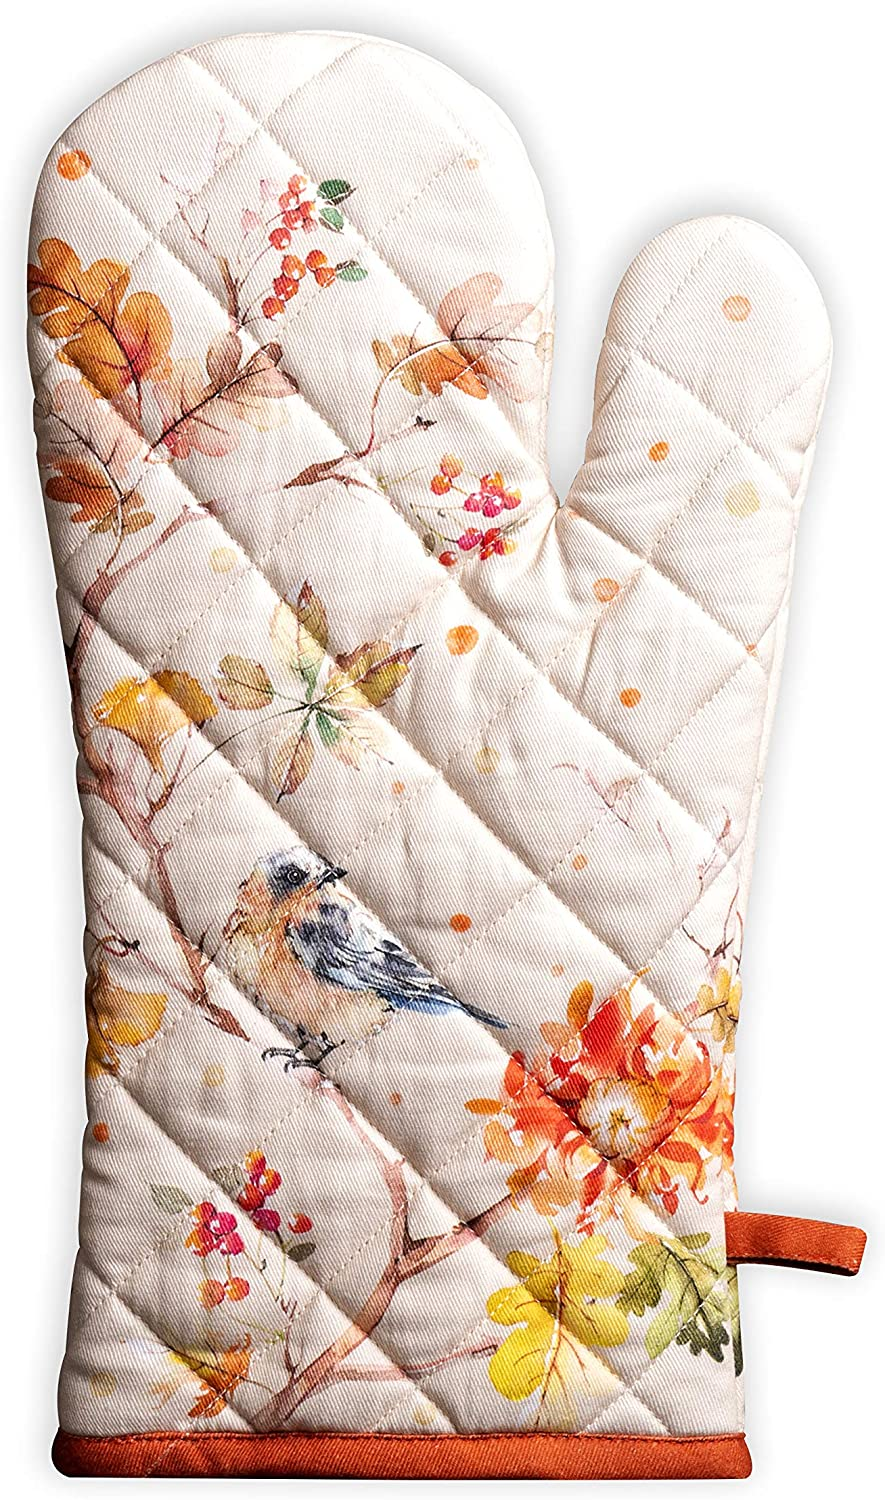 Maison d' Hermine Kelim 100% Cotton Prairie Oven Mitt 7.5 Inch by 13 Inch. Perfect for Thanksgiving and Christmas